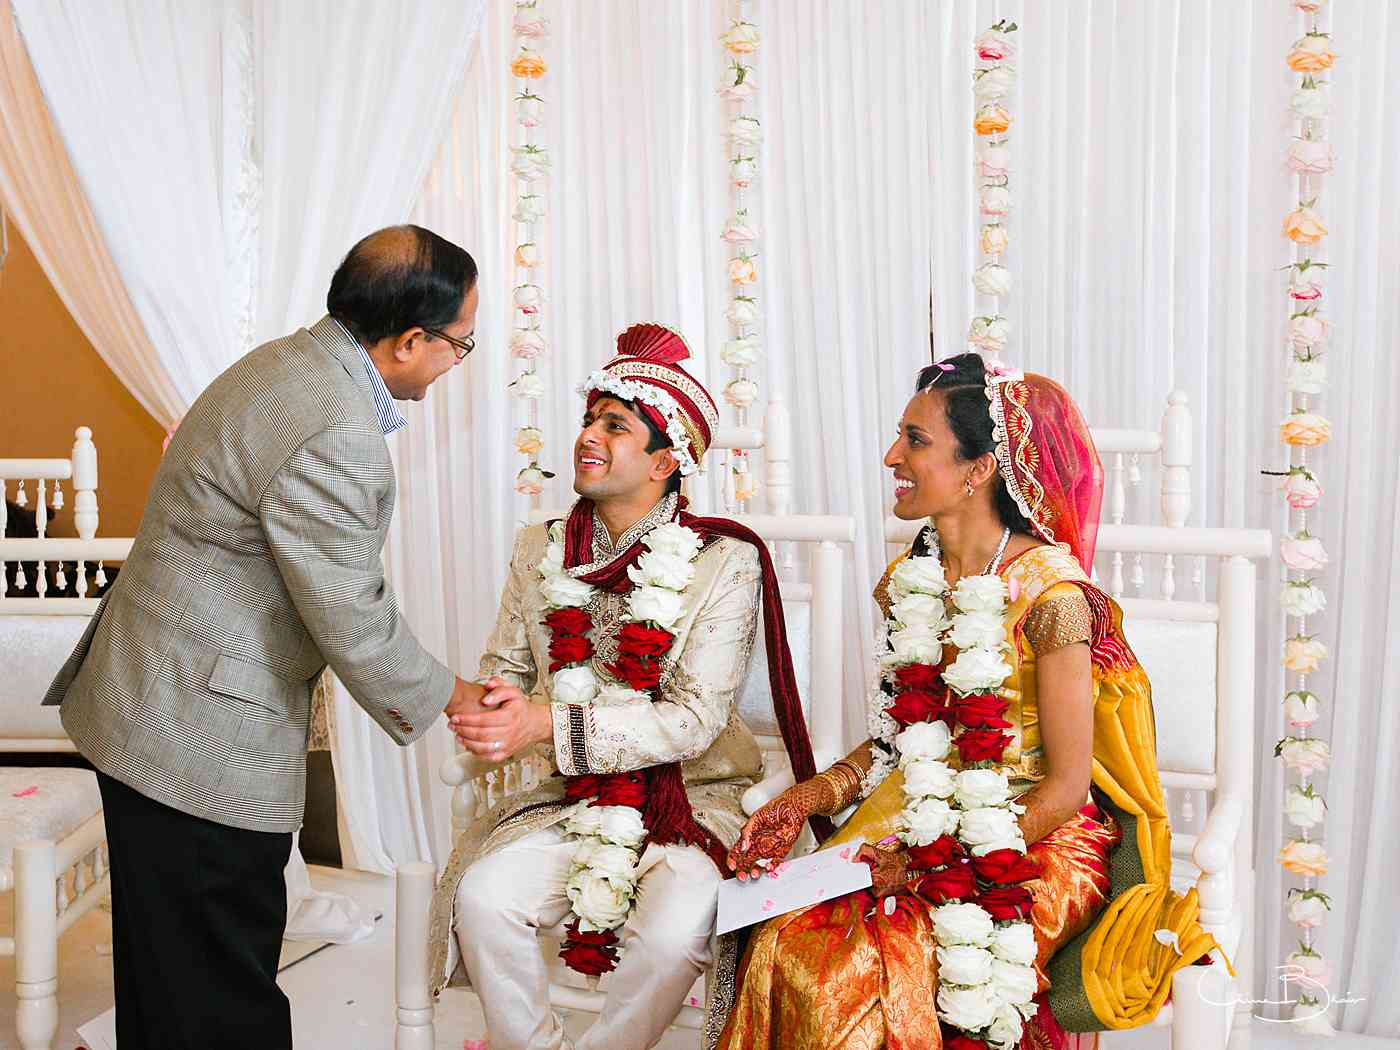 Groom being greeted by wedding guest